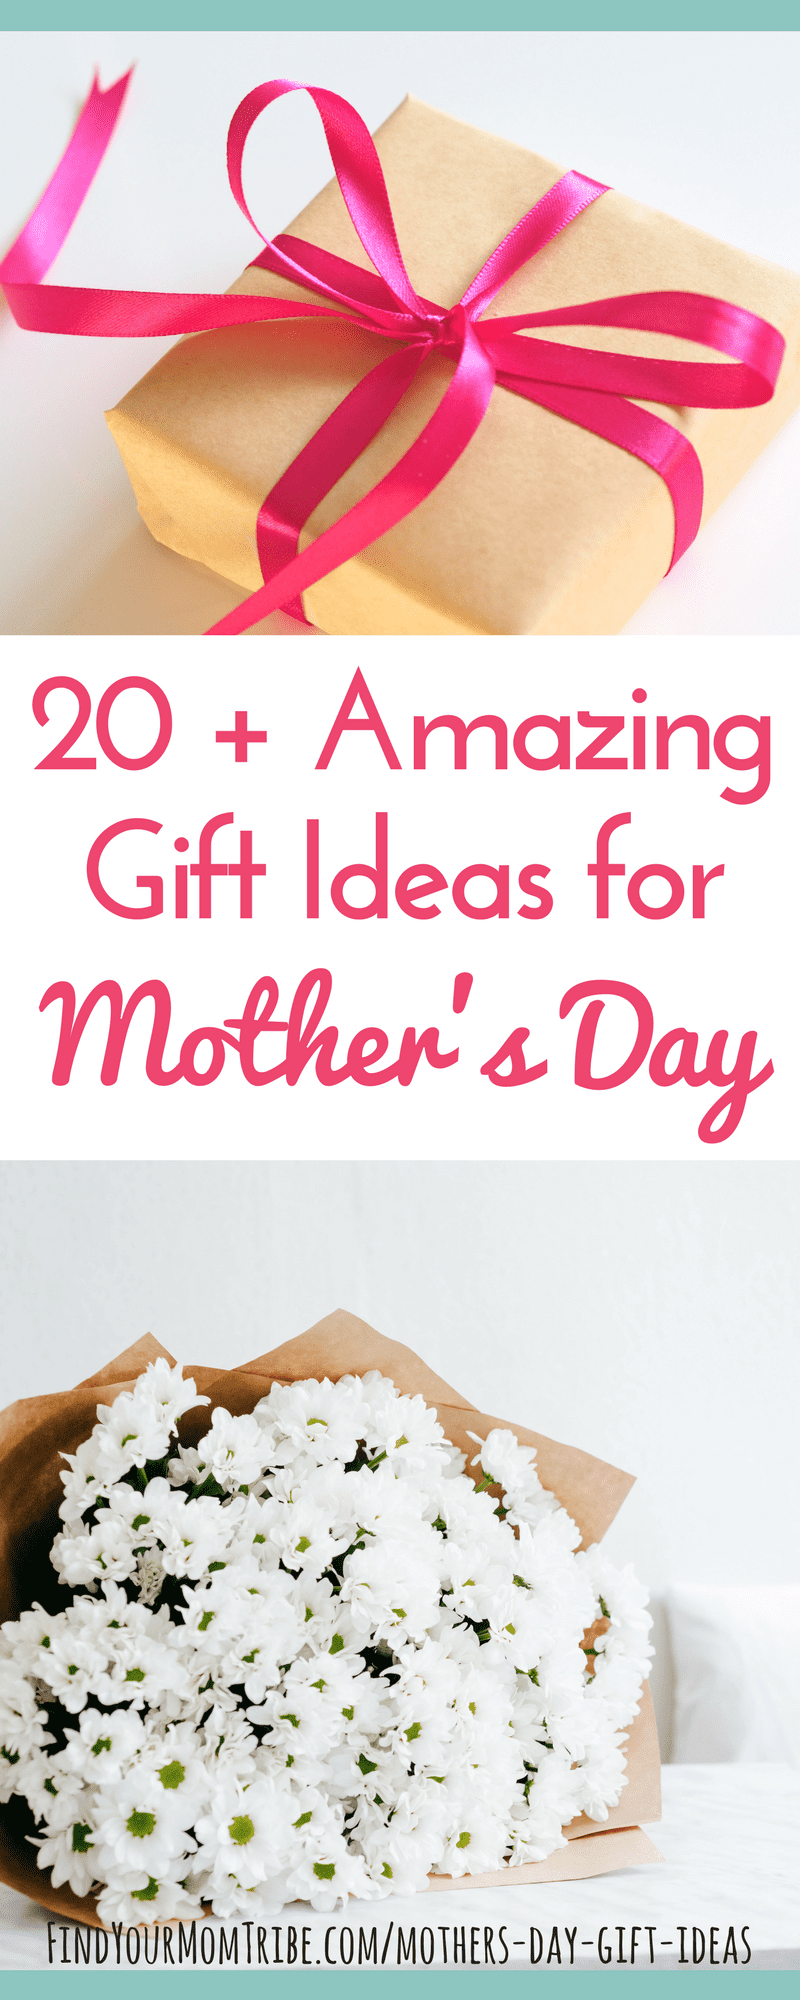 This is the BEST Mother's Day gift guide! Here are 20+ gift ideas for Mother's Day! Affordable and high-end gift ideas perfect for moms, grandmoms, and even your mother-in-law! | Mother's Day 2018 | Best Mother's Day gift ideas | Gifts for Mother's Day